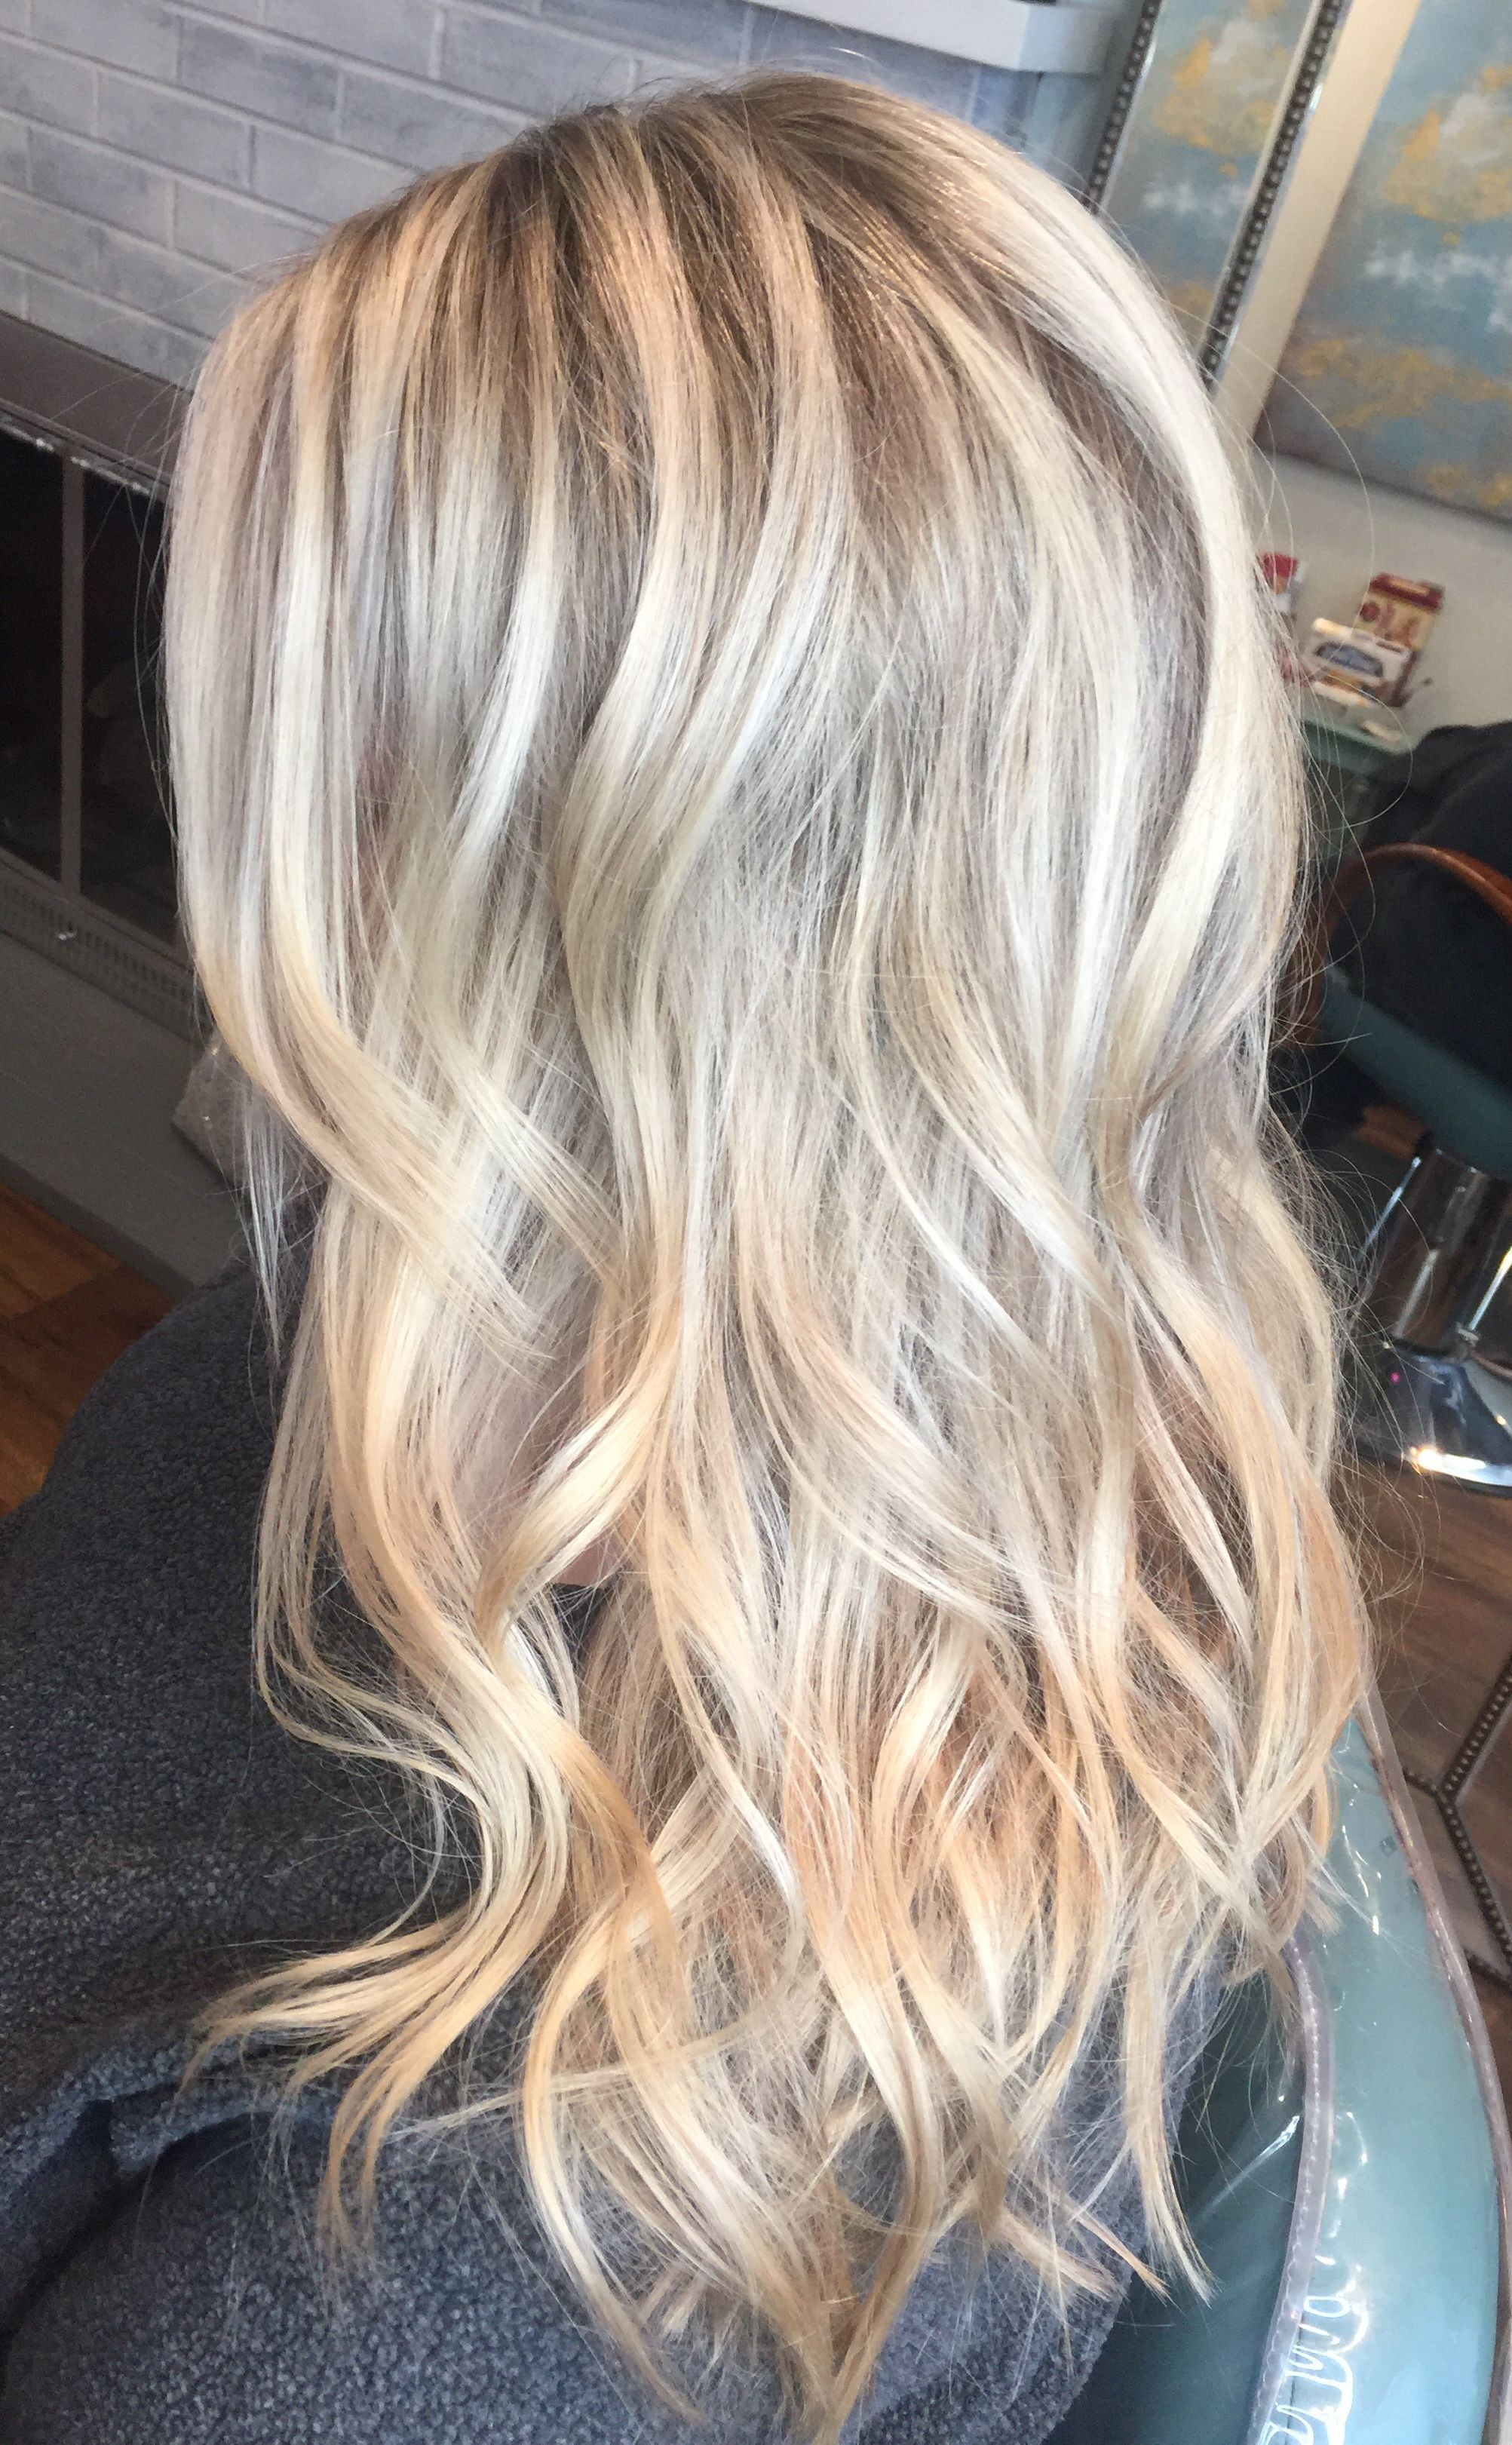 Blonde hair hair color and styles pinterest blondes hair